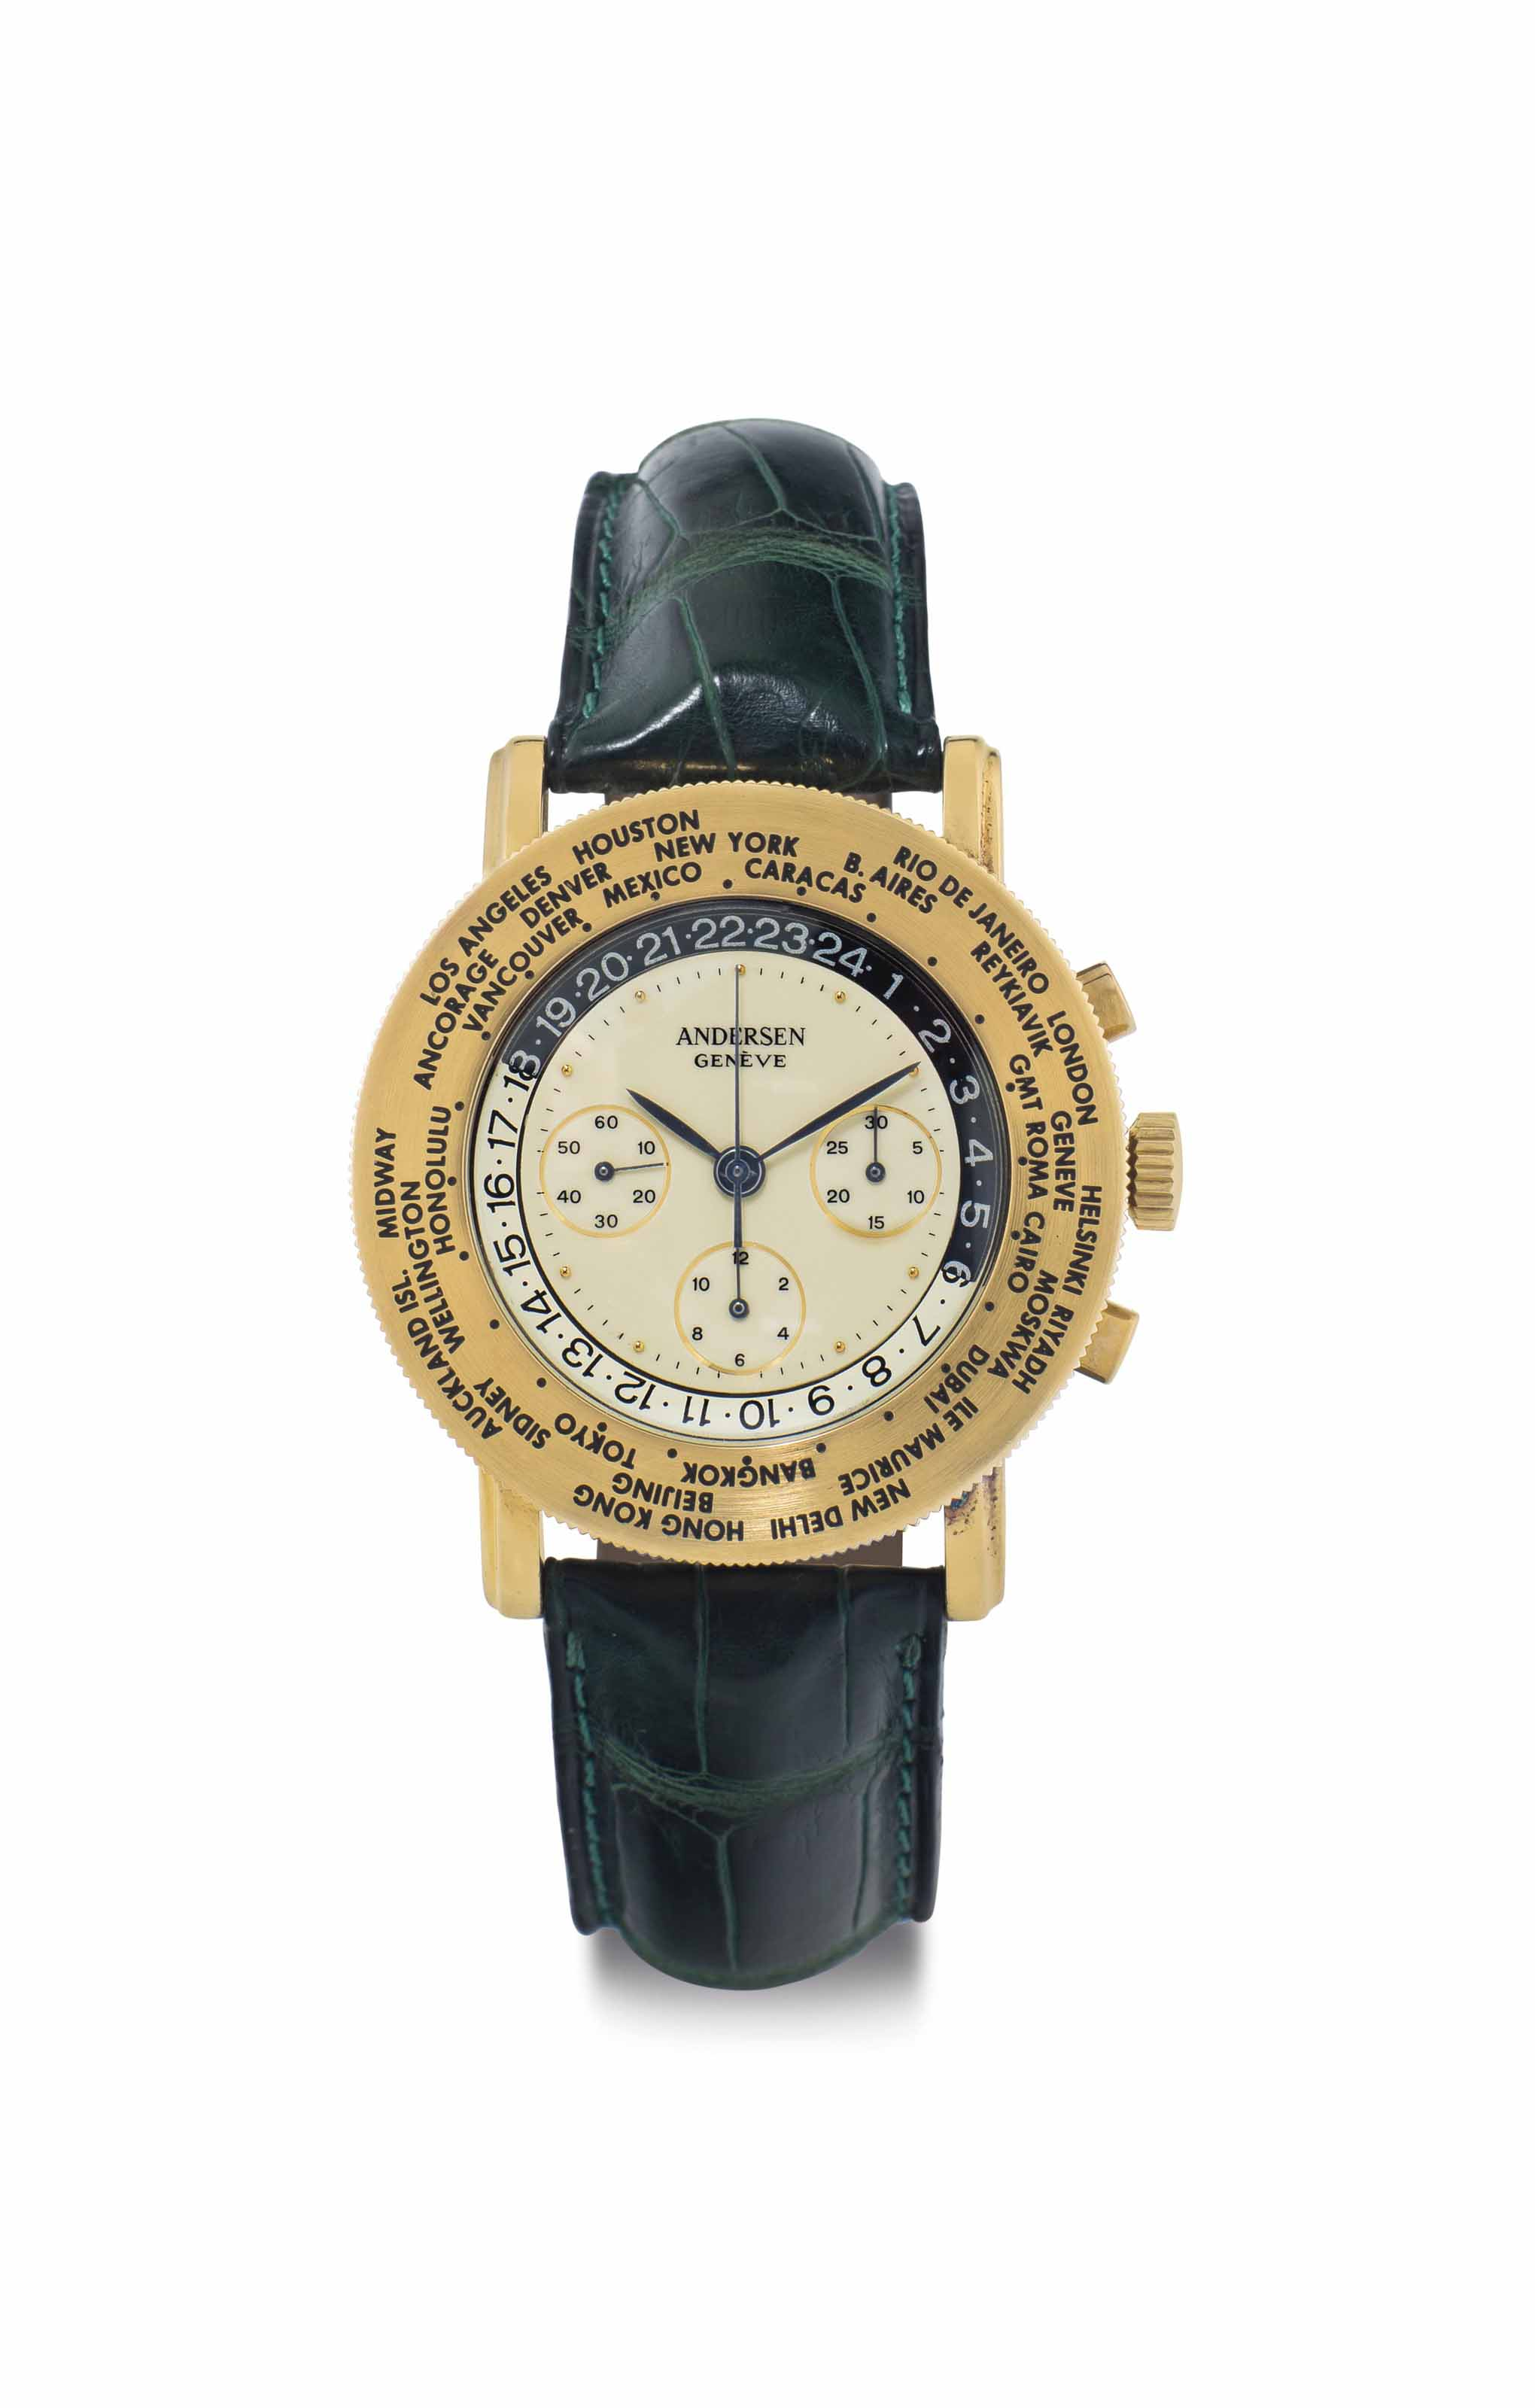 Svend Andersen. A Large 18k Gold World Time Chronograph Wristwatch